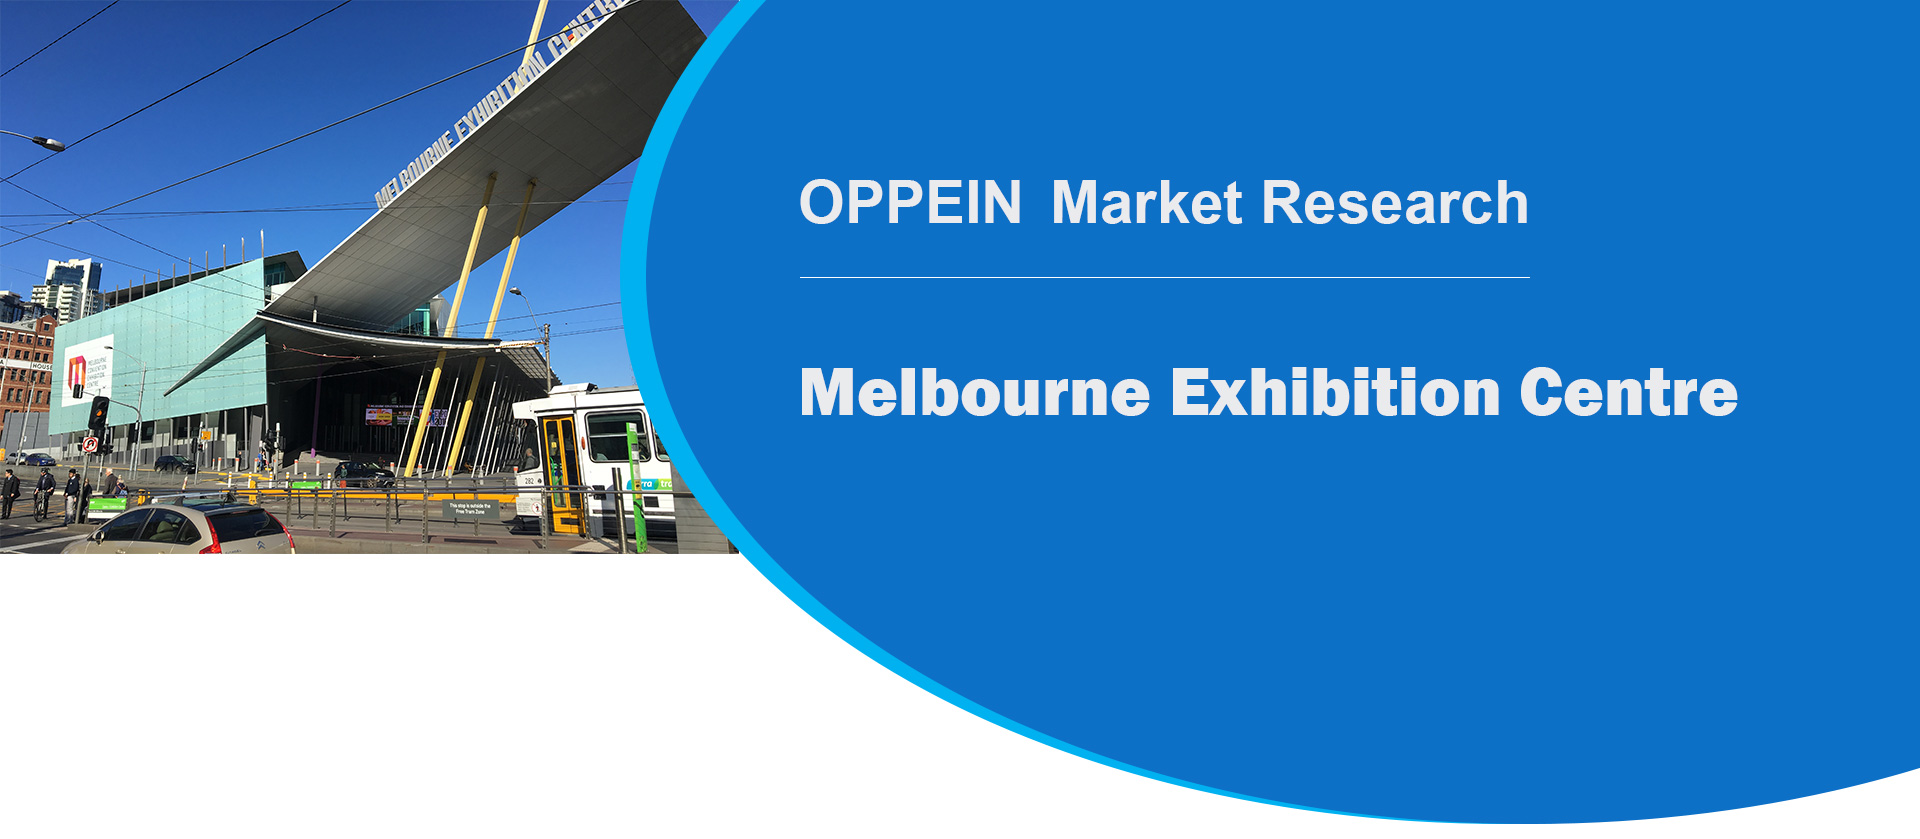 OPPEIN Melbourne Exhibition Centre  OPPEIN - Kitchen Cabinet Doors Brisbane